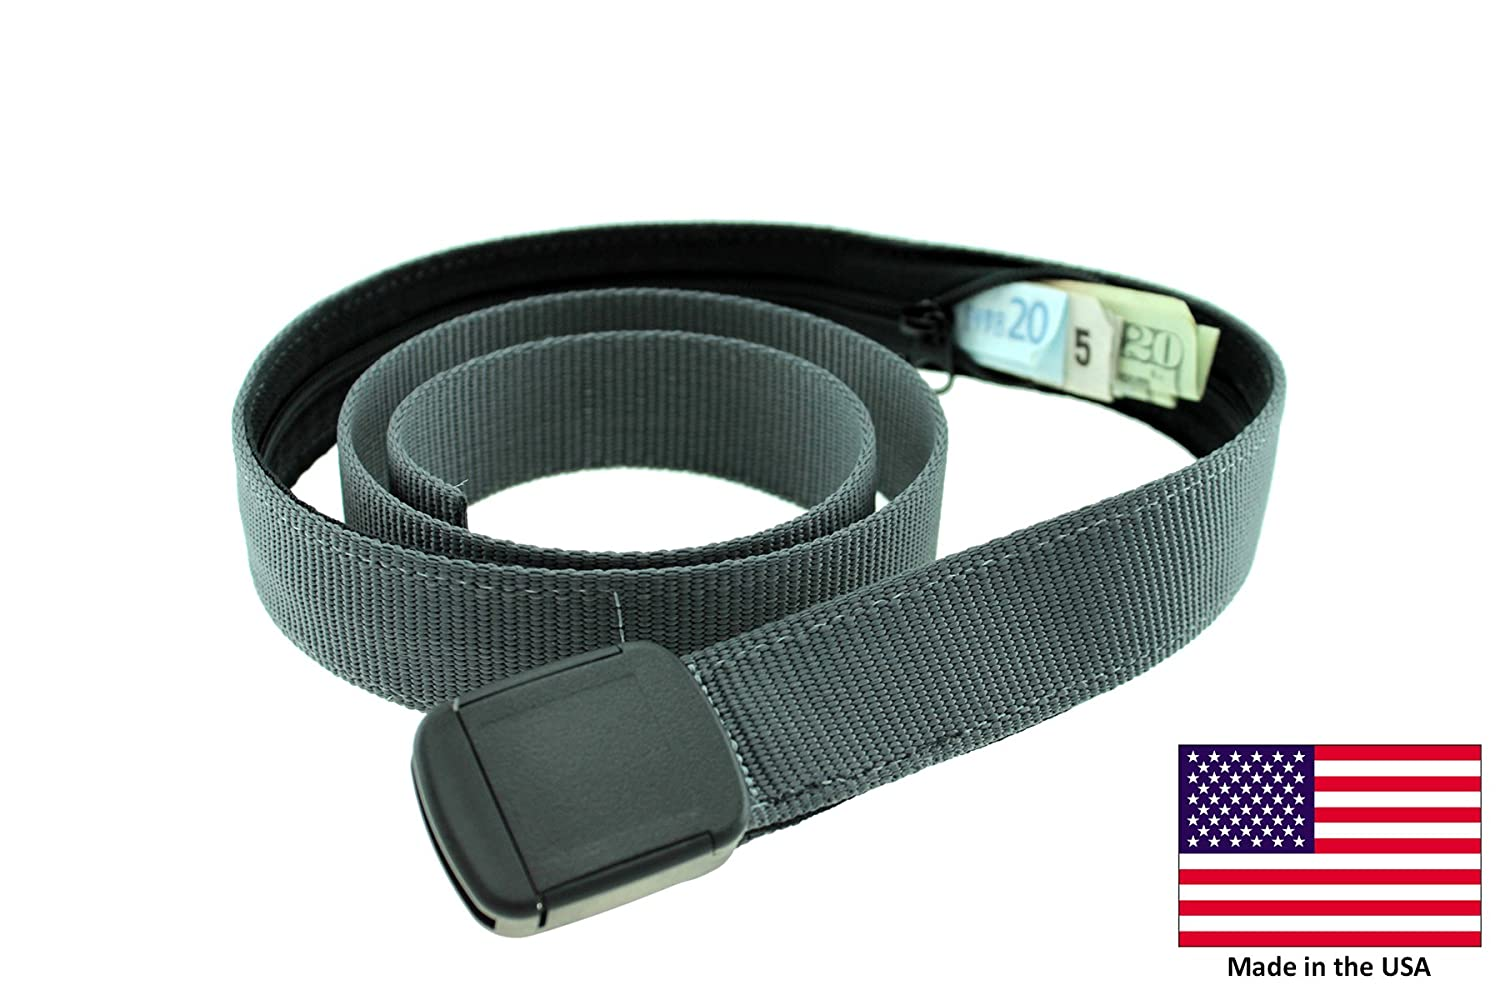 Hiker Money Belt Made in USA by Thomas Bates 6778371